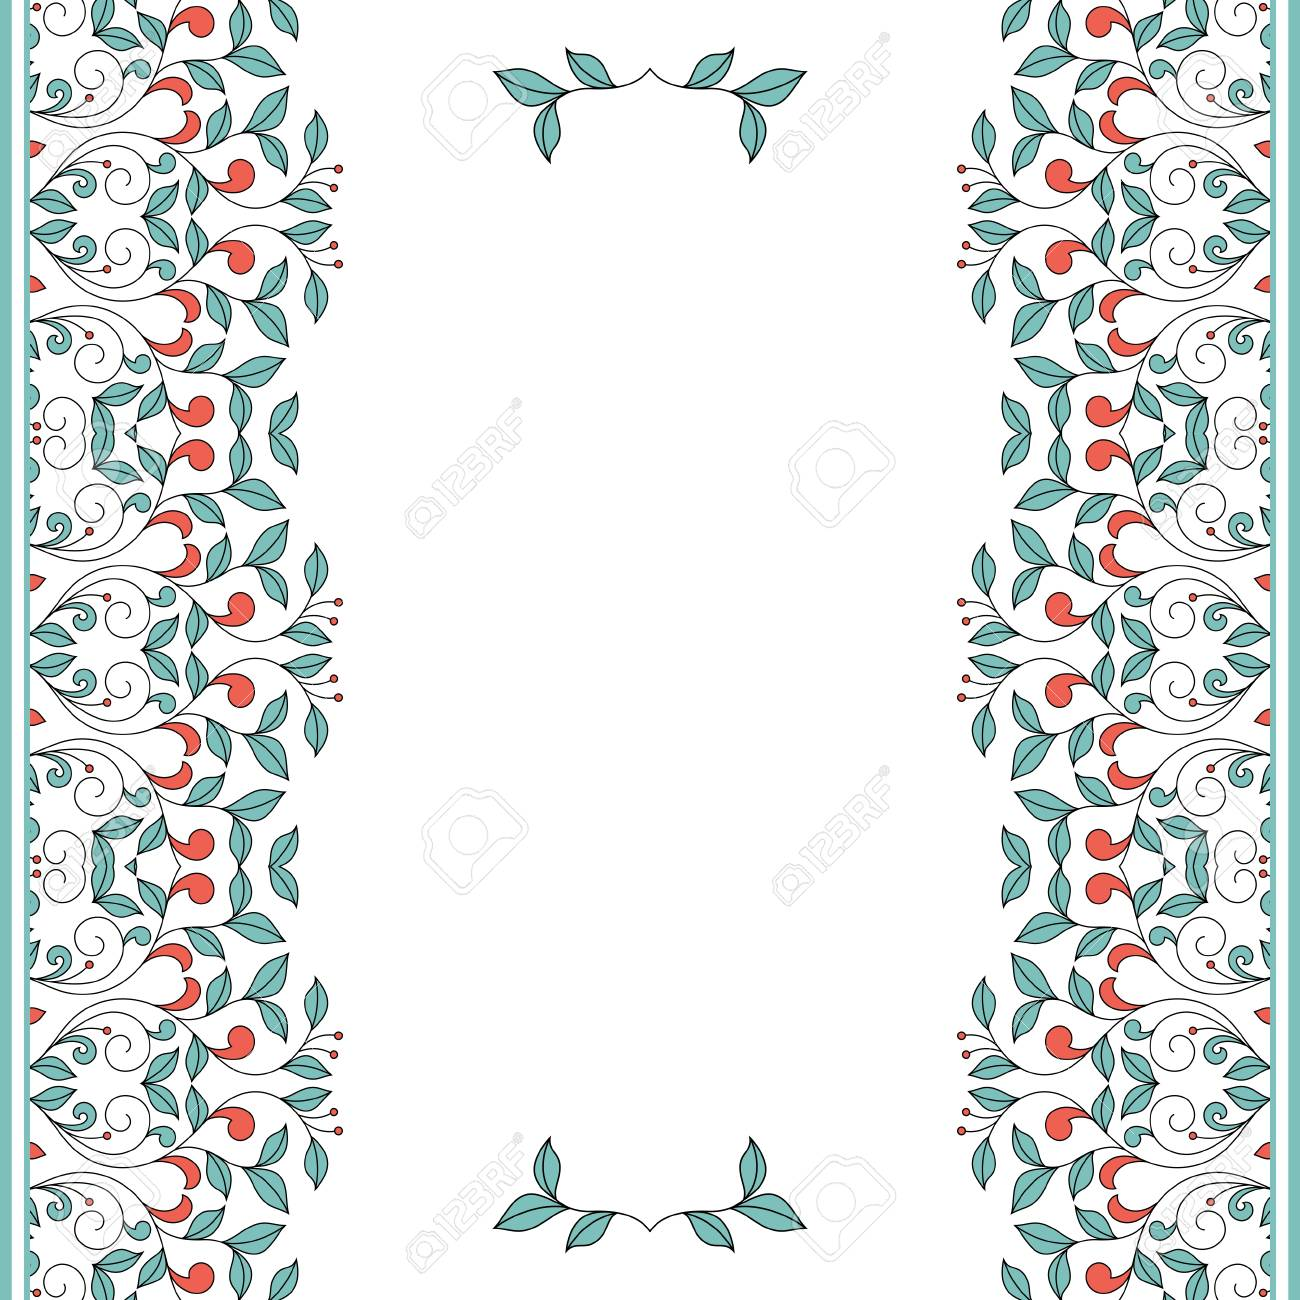 Invitation Card With Floral Ornament Eps File